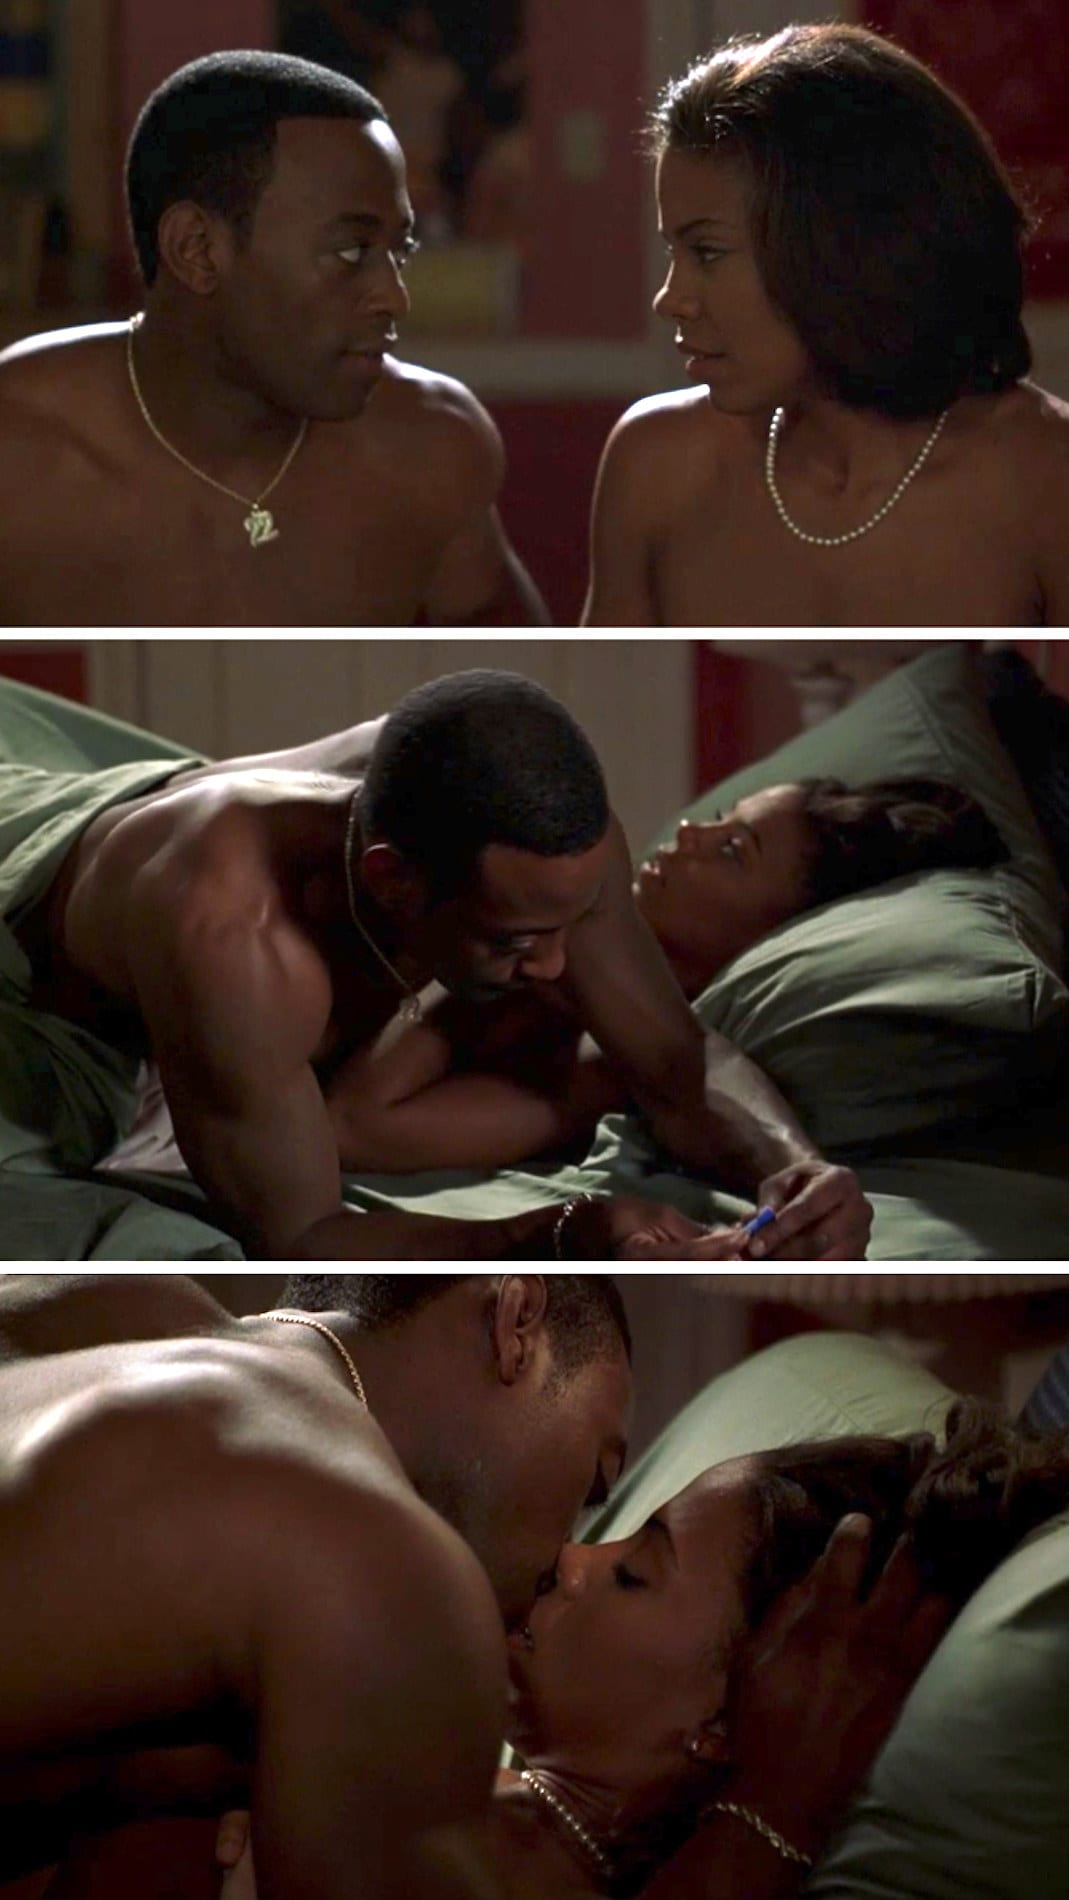 """Sanaa Lathan and Omar Epps in a sex scene from """"Love & Basketball"""""""